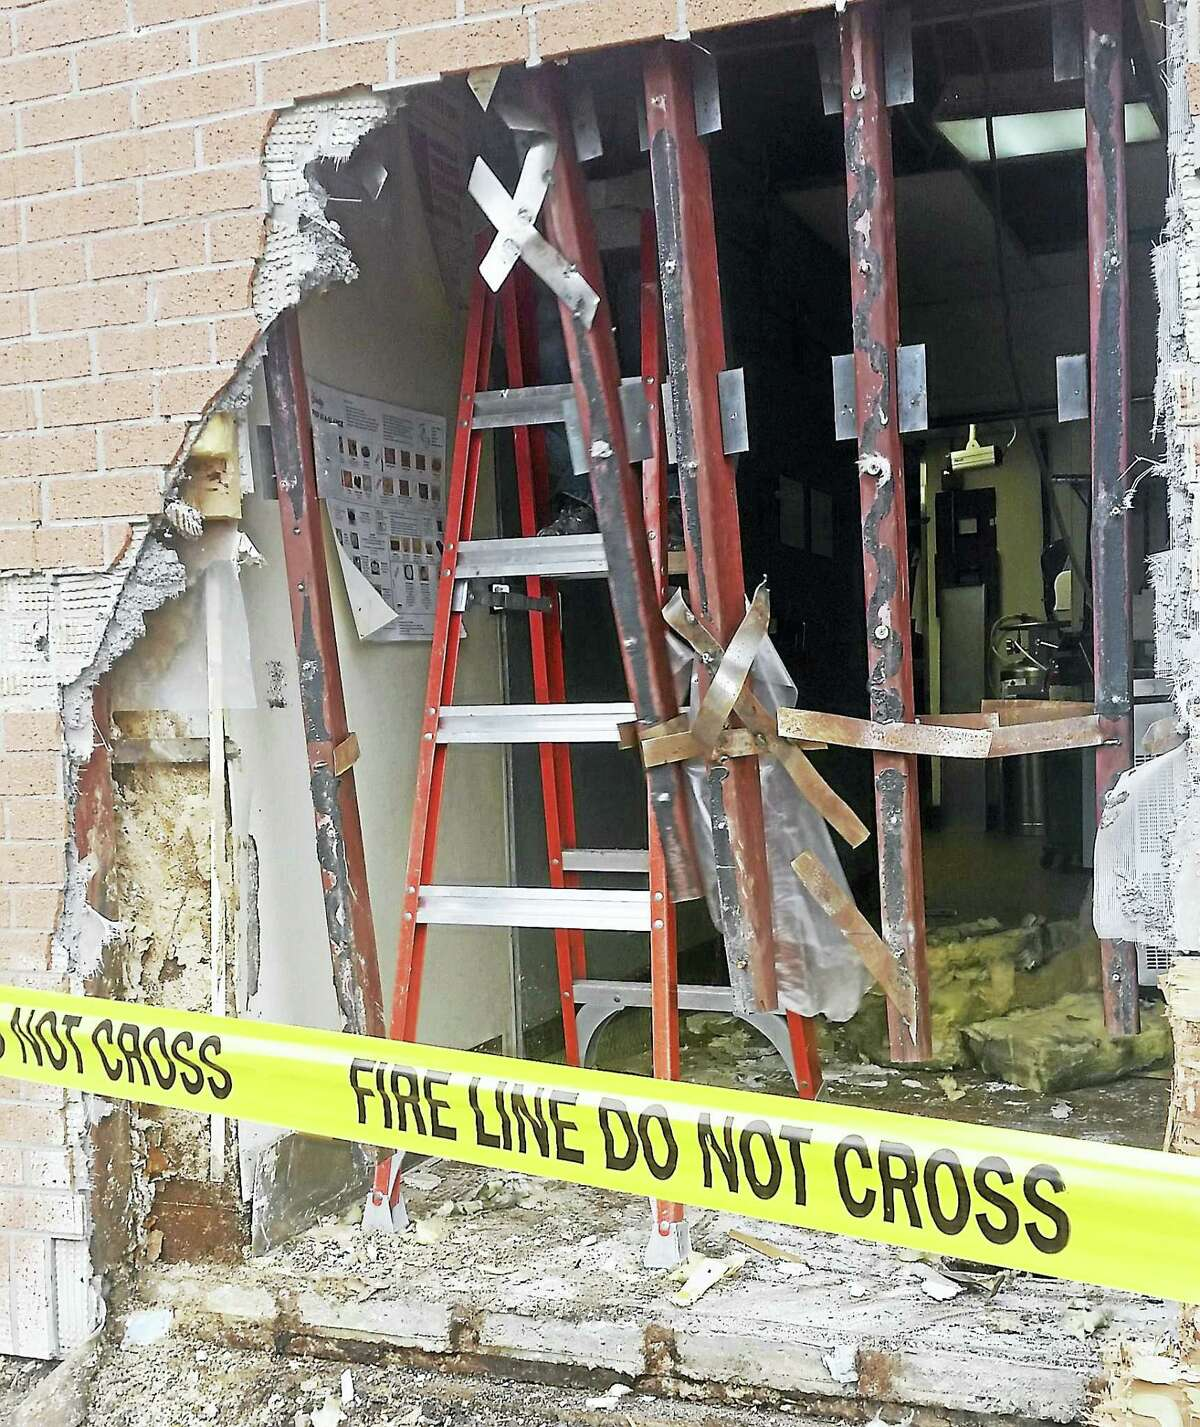 Friendly's in Cromwell was damaged Wednesday after a woman accidentally drove a car into the building, officials said.